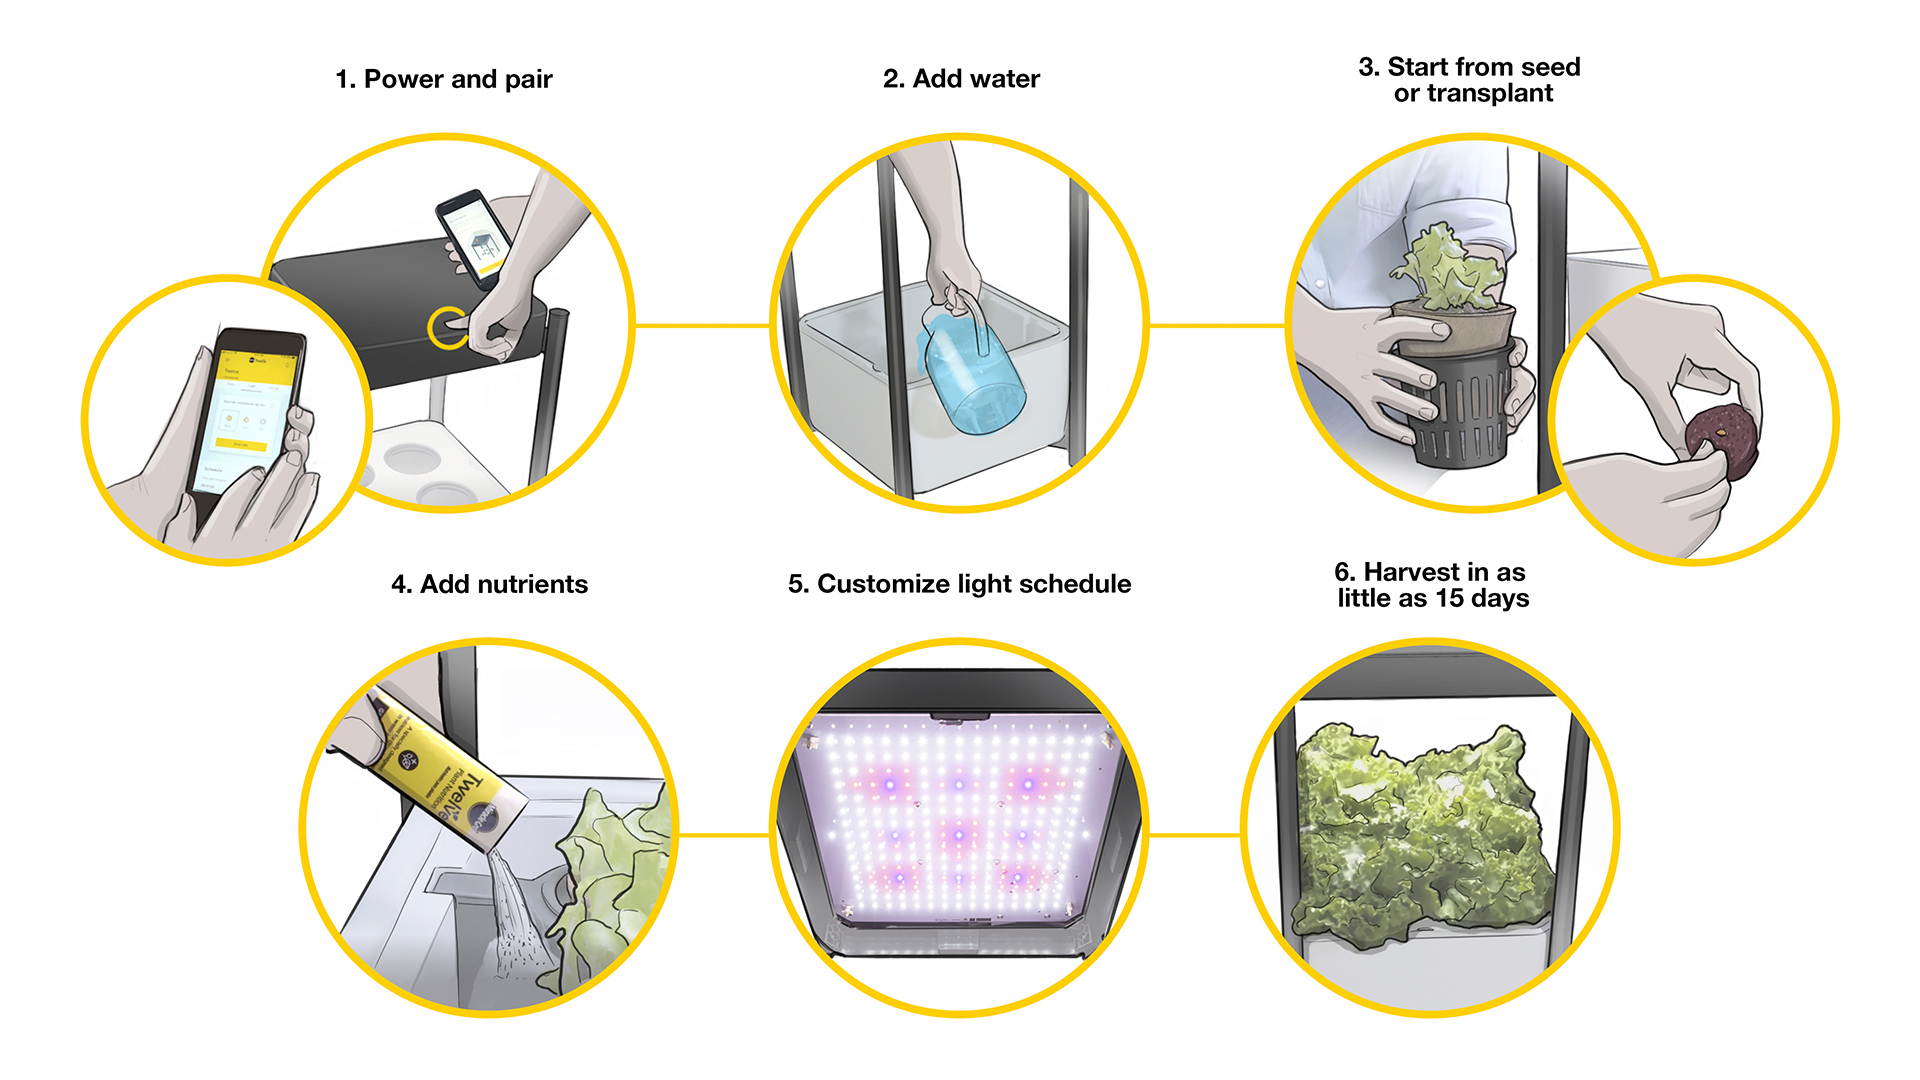 prioritydesigns_miracle-gro_indoor-growing_design_user-experience-task-analysis